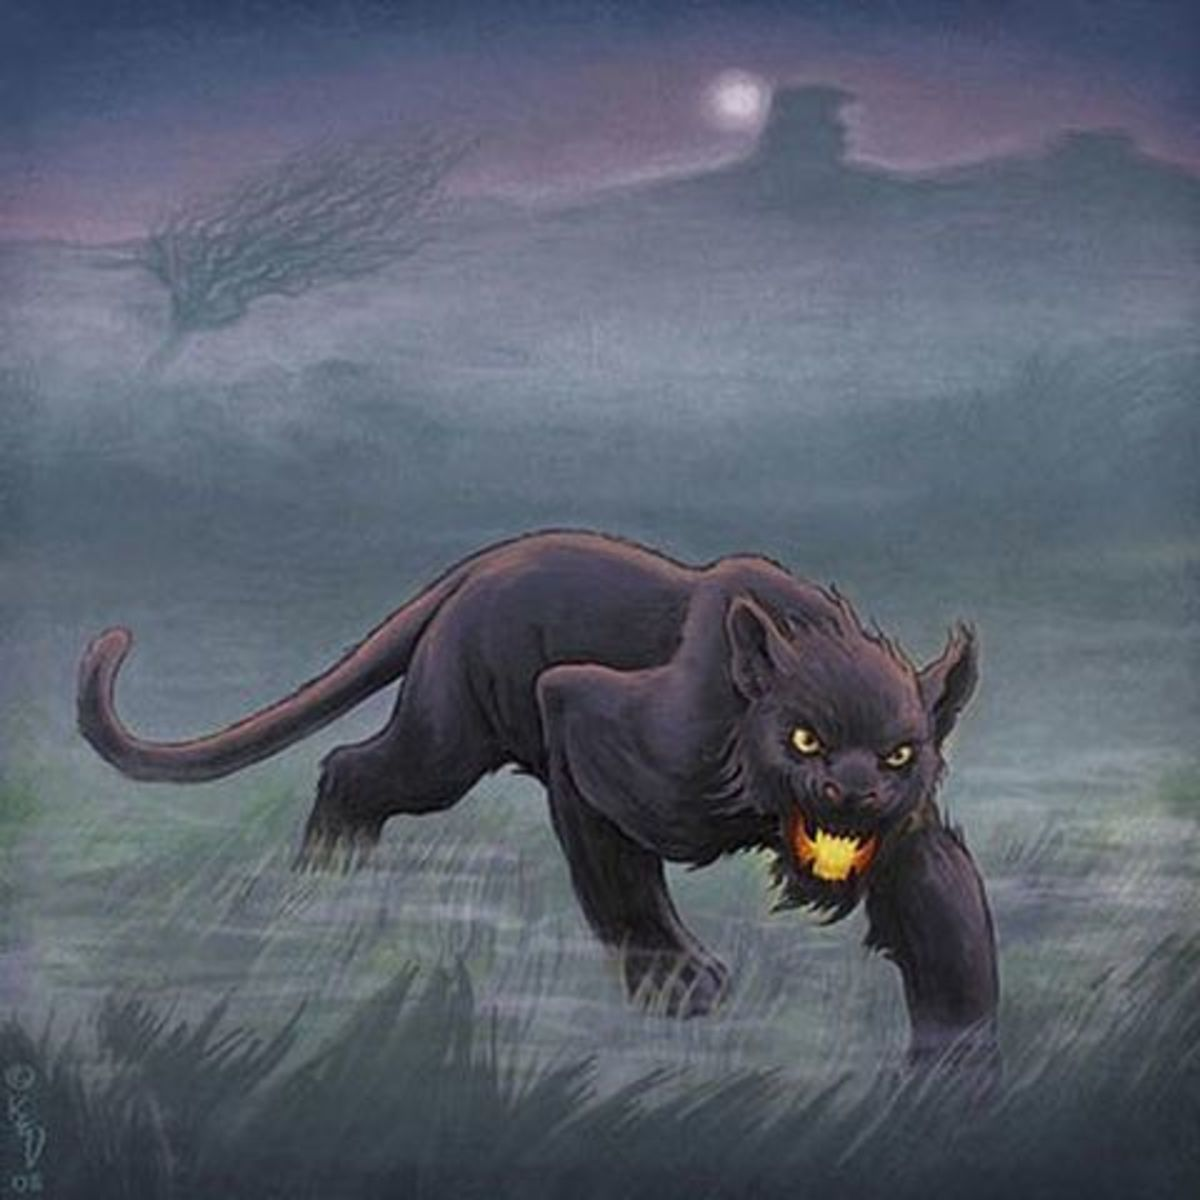 Alien Big Cats: The Beast of Bodmin Moor and the Beast of Buchan